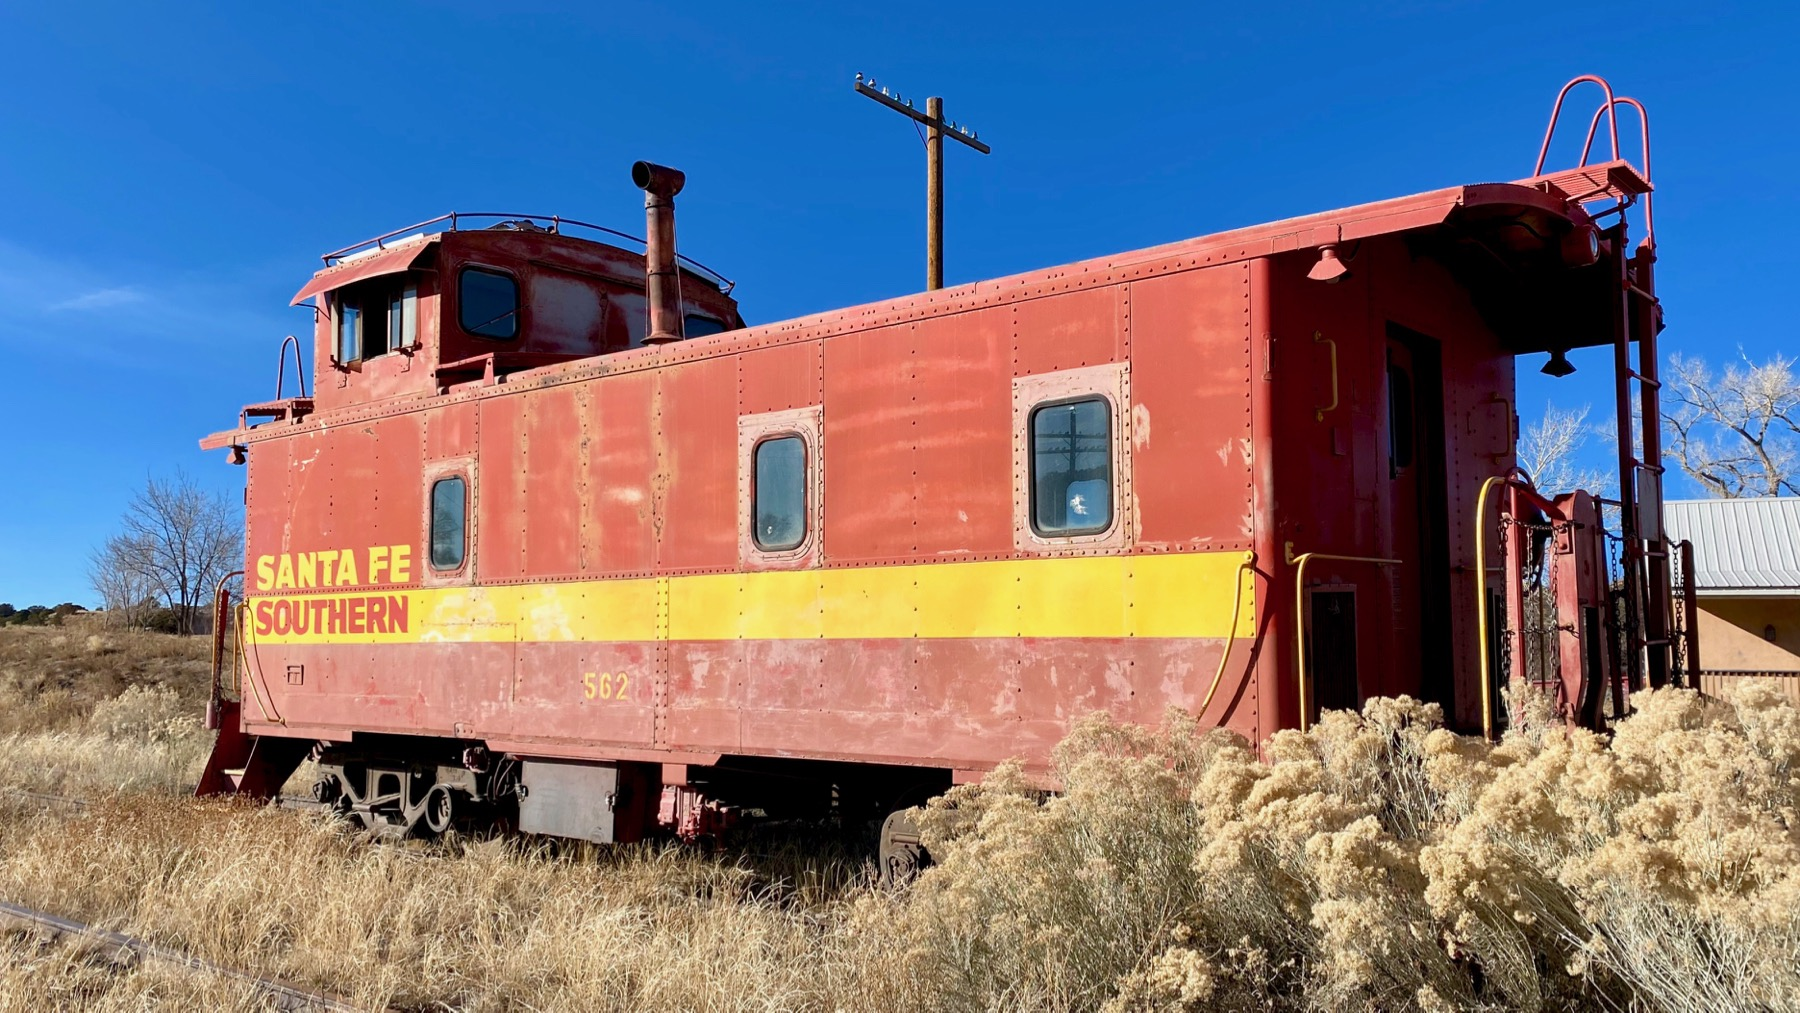 Parked caboose